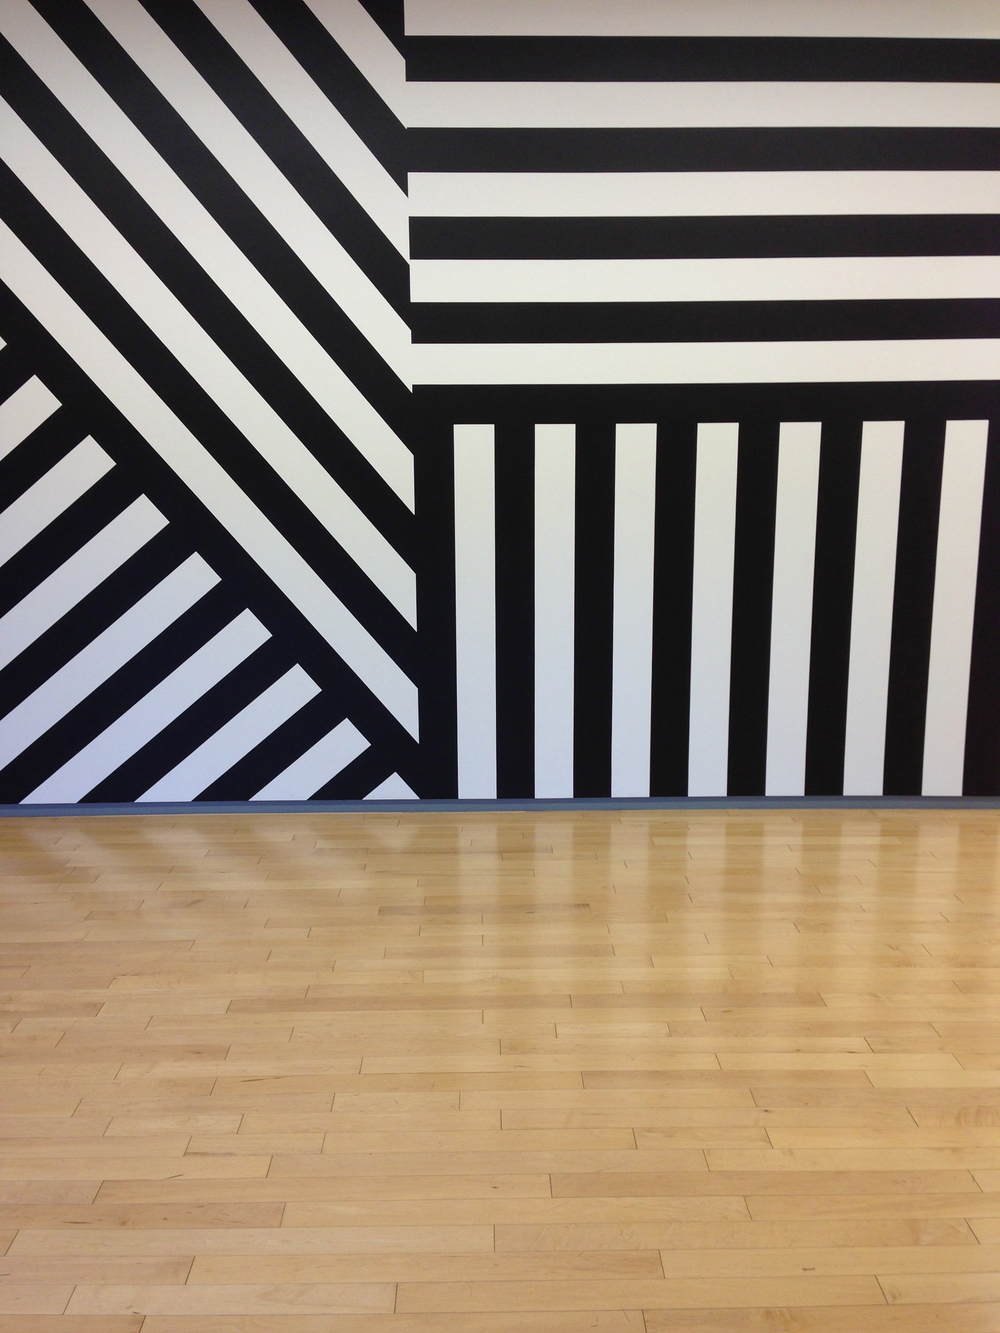 It was seriously hot in the Berkshires on the festival's last day, but one could cool off in the world class art galleries.  This is from the Sol LeWitt drawing retrospective.